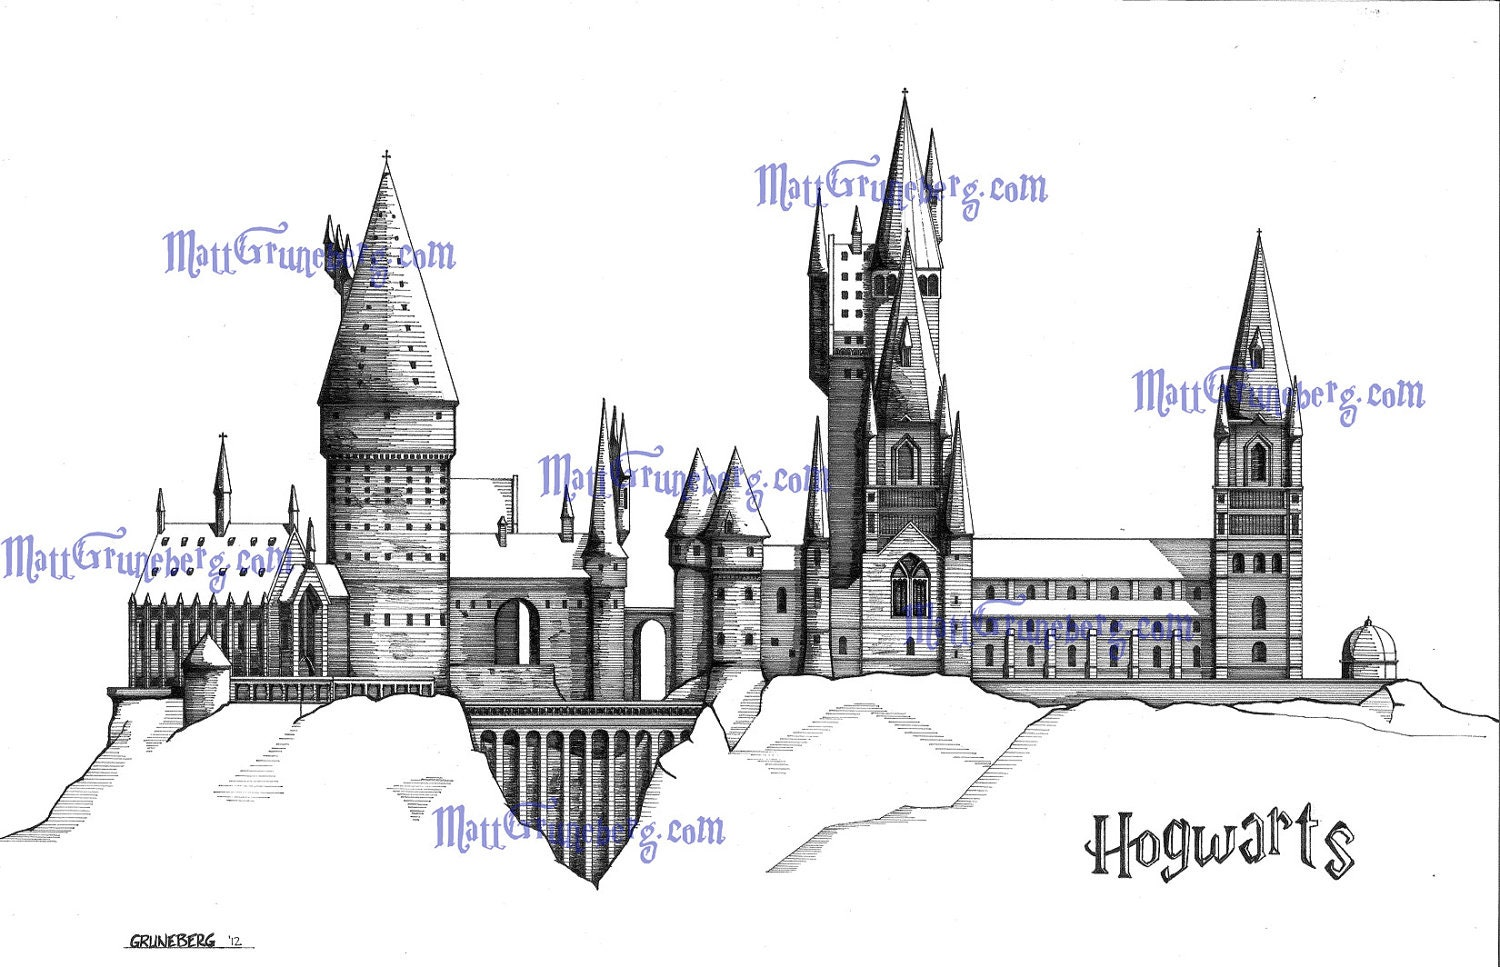 396176098451627629 also Hogwarts School Of Witchcraft And additionally 3d Drawing additionally Mech in addition Outline. on 41 orthographic drawings